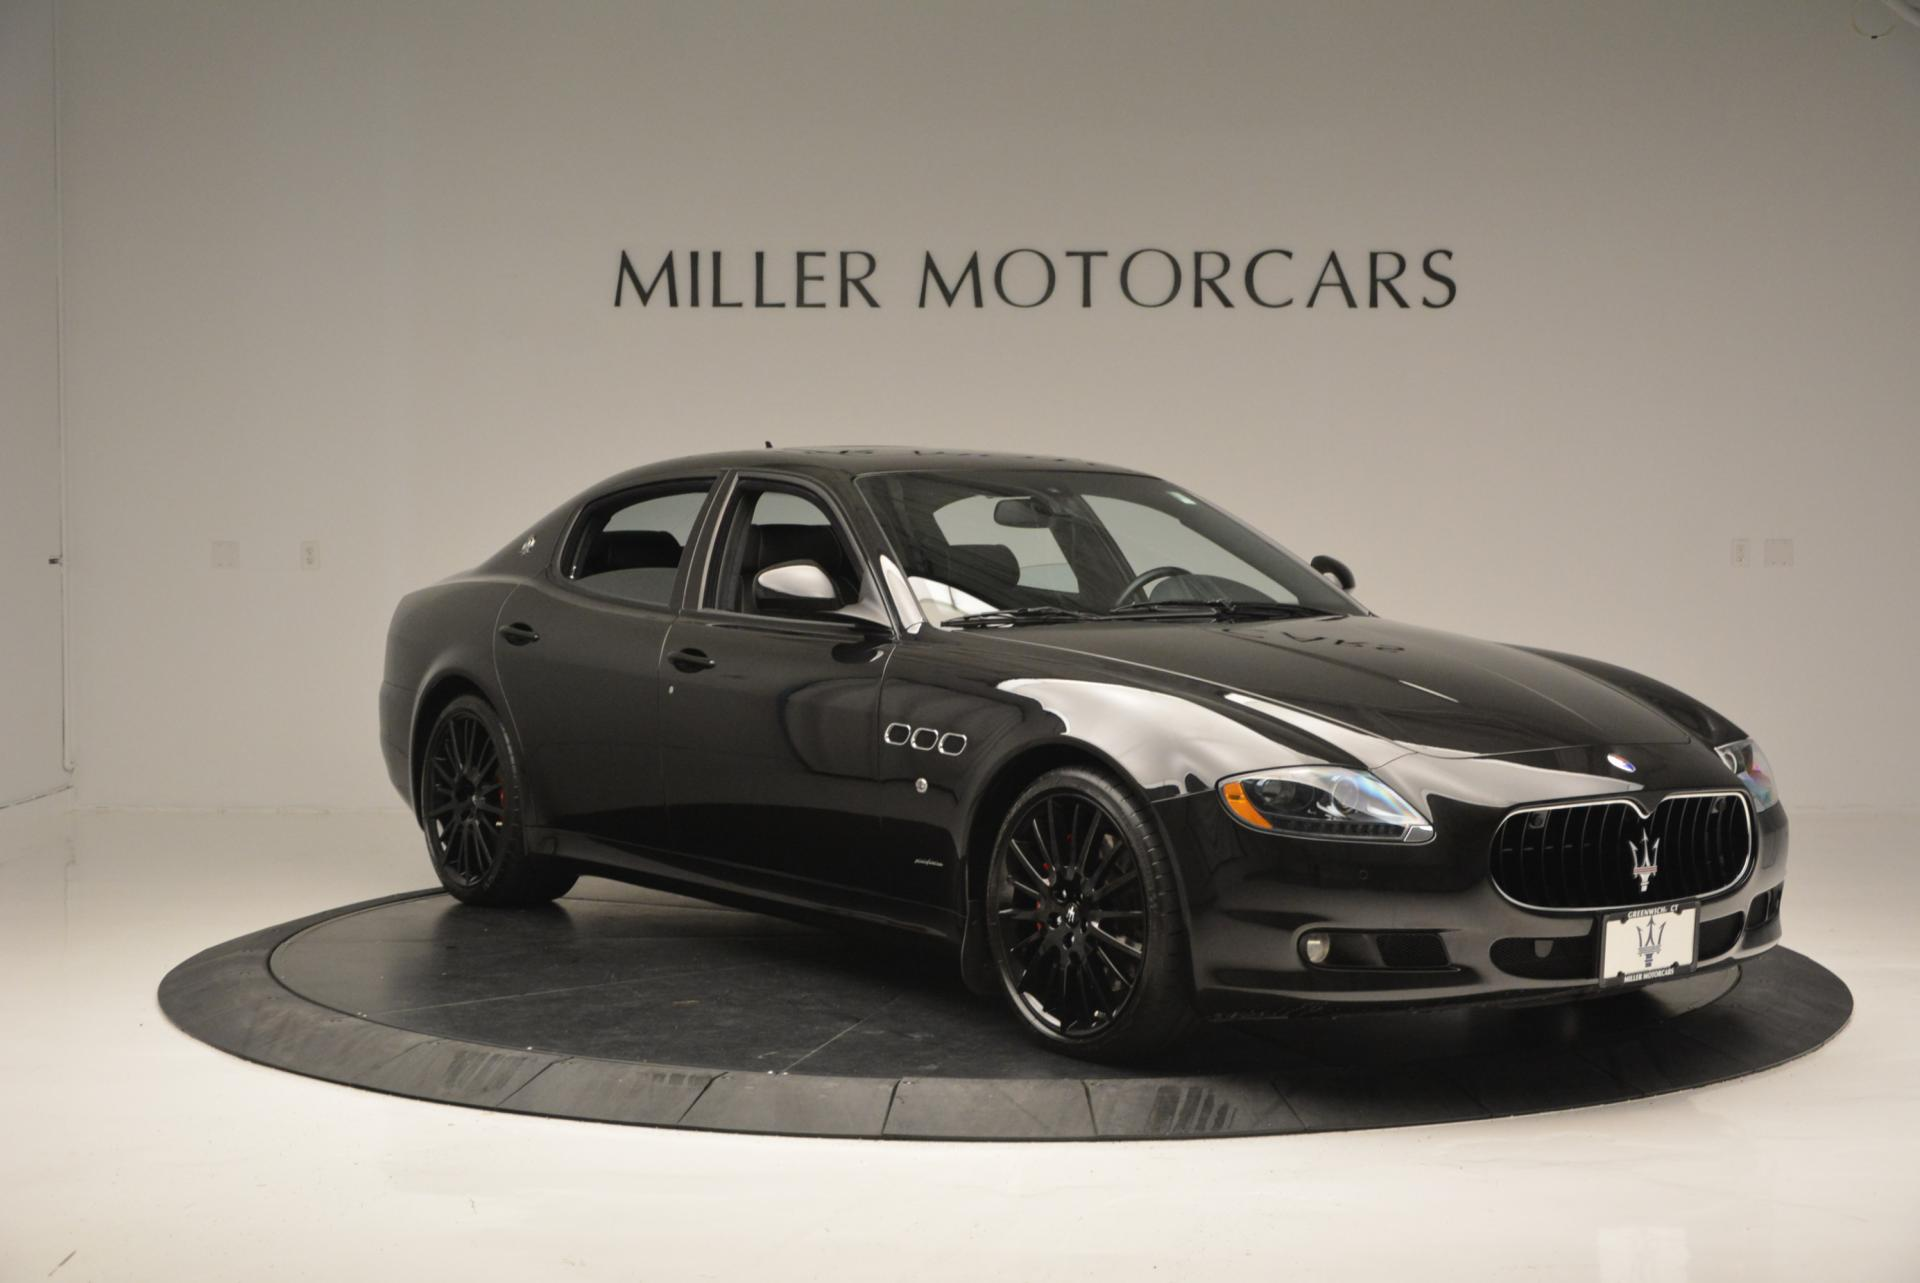 Used 2011 Maserati Quattroporte Sport GT S For Sale In Greenwich, CT. Alfa Romeo of Greenwich, 7080 531_p11